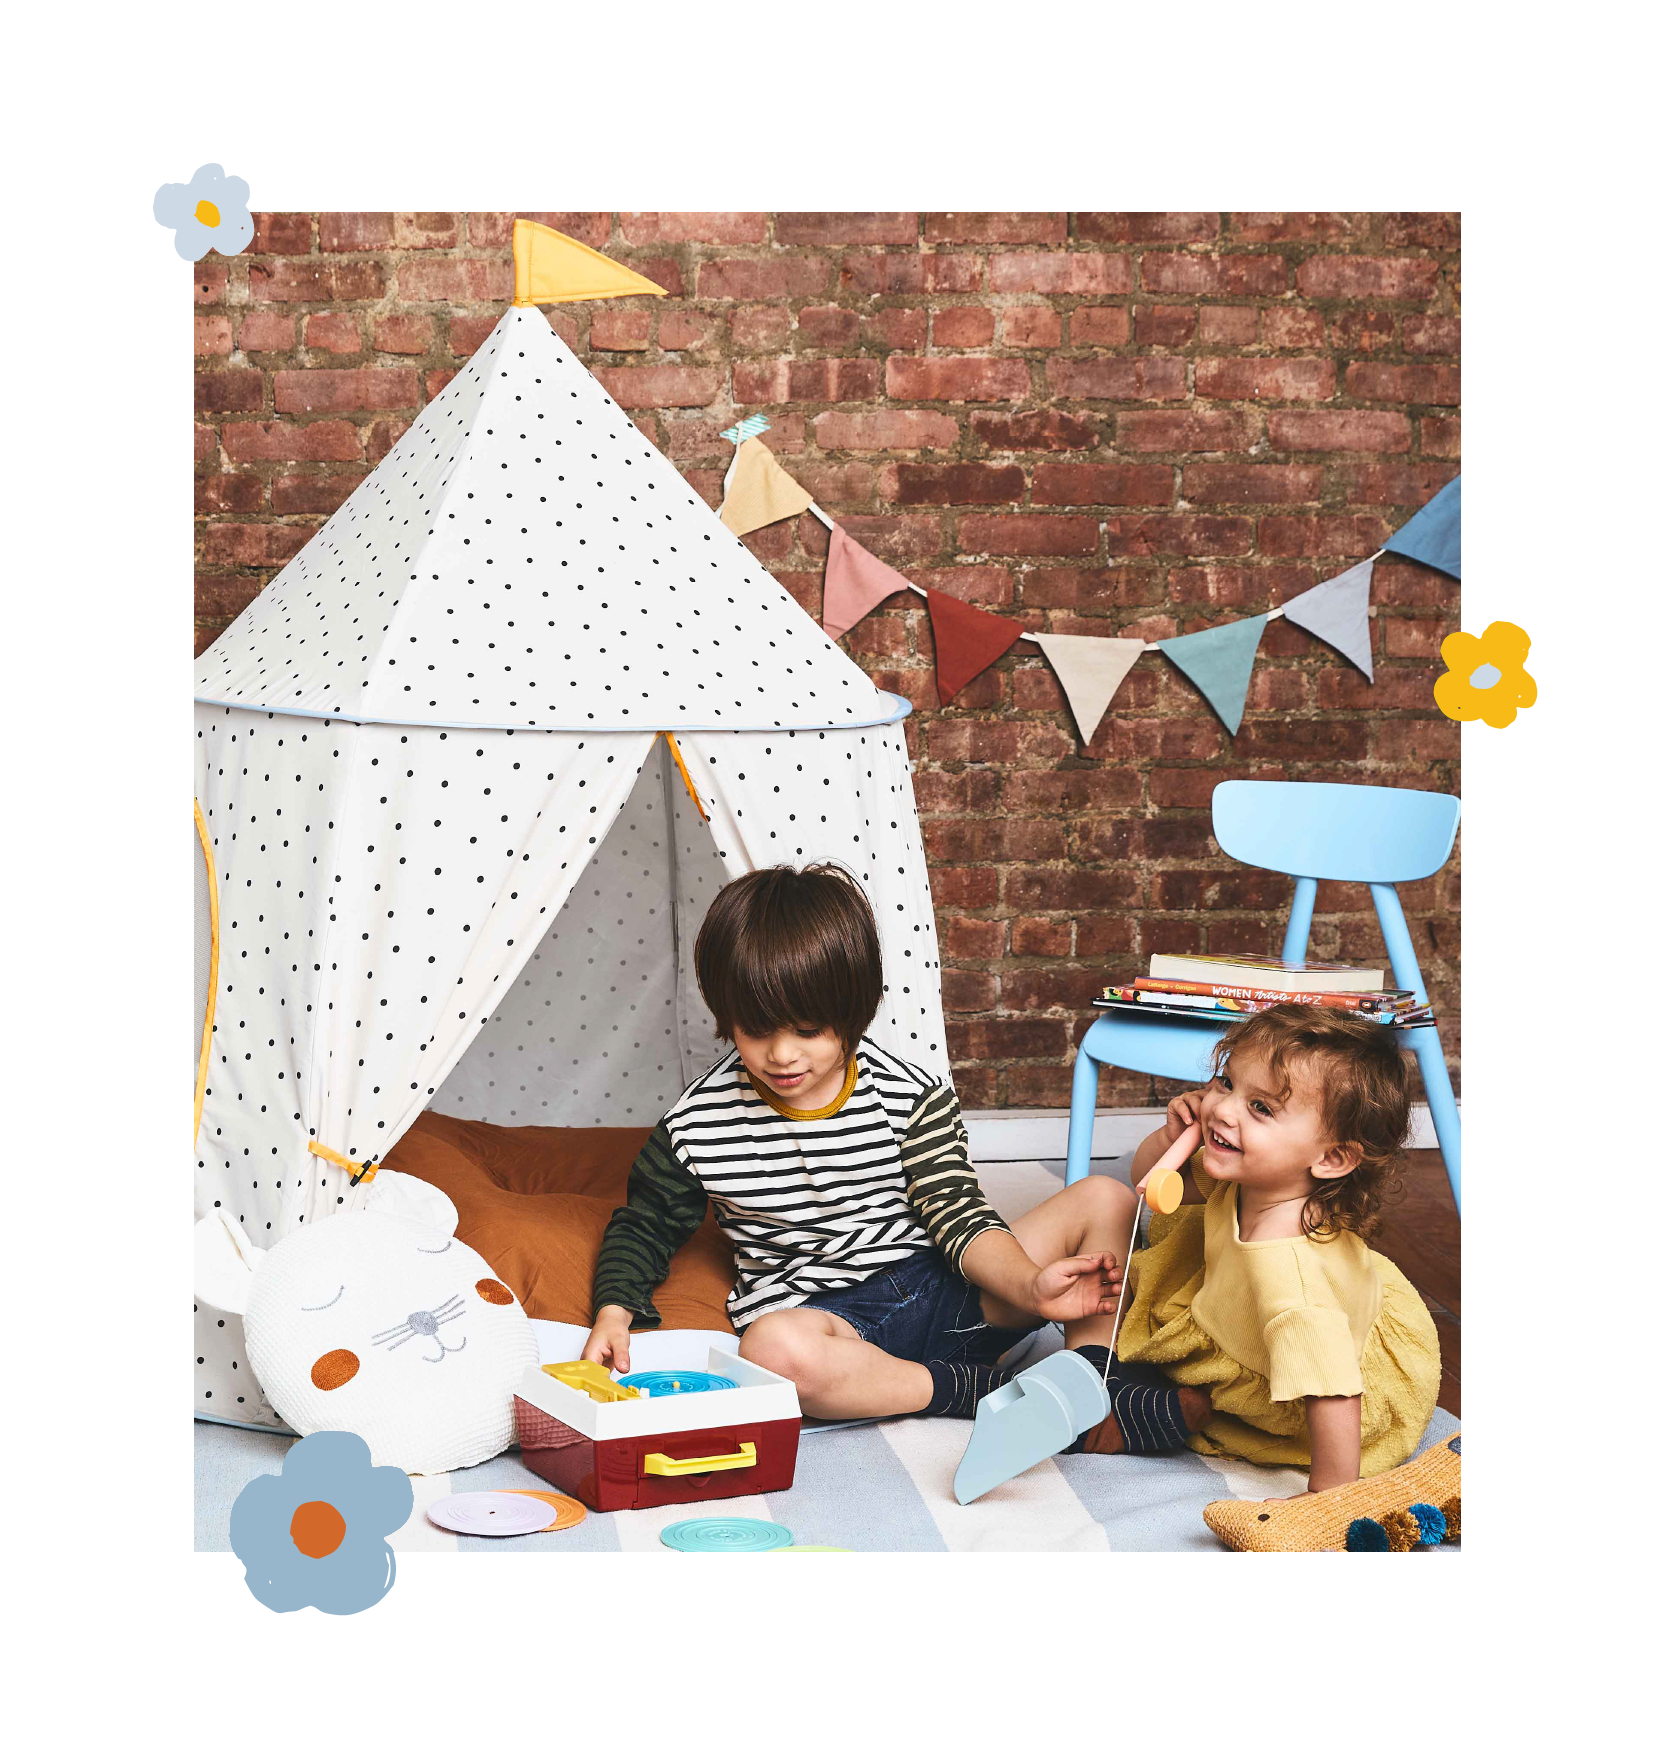 polka dot tent with two kids a little boy and girl playing in front with vintage toys